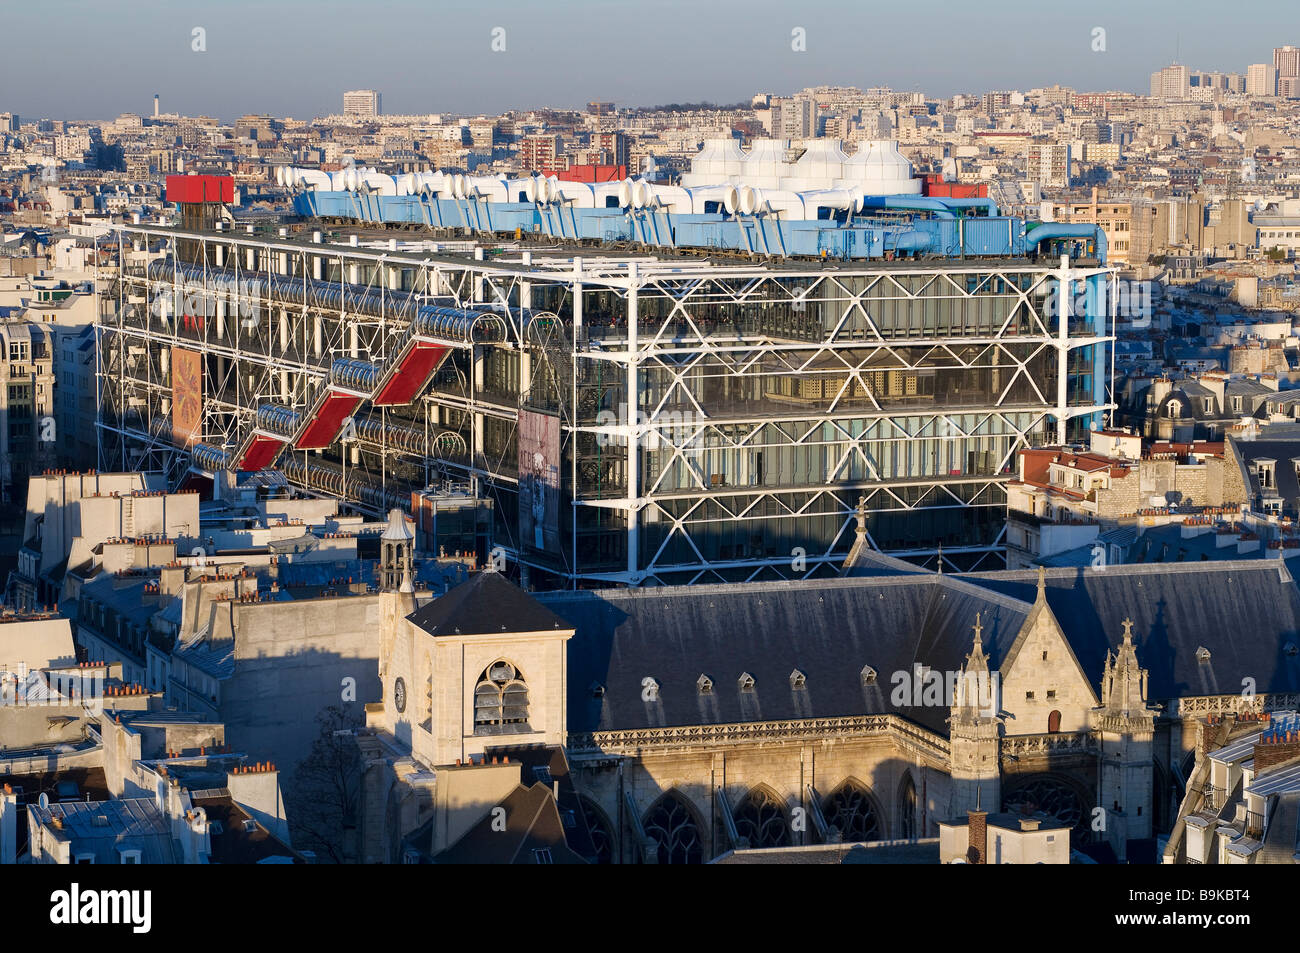 France, Paris, Centre Pompidou, by architects Renzo Piano, Richard Rogers and Gianfranco Franchini - Stock Image